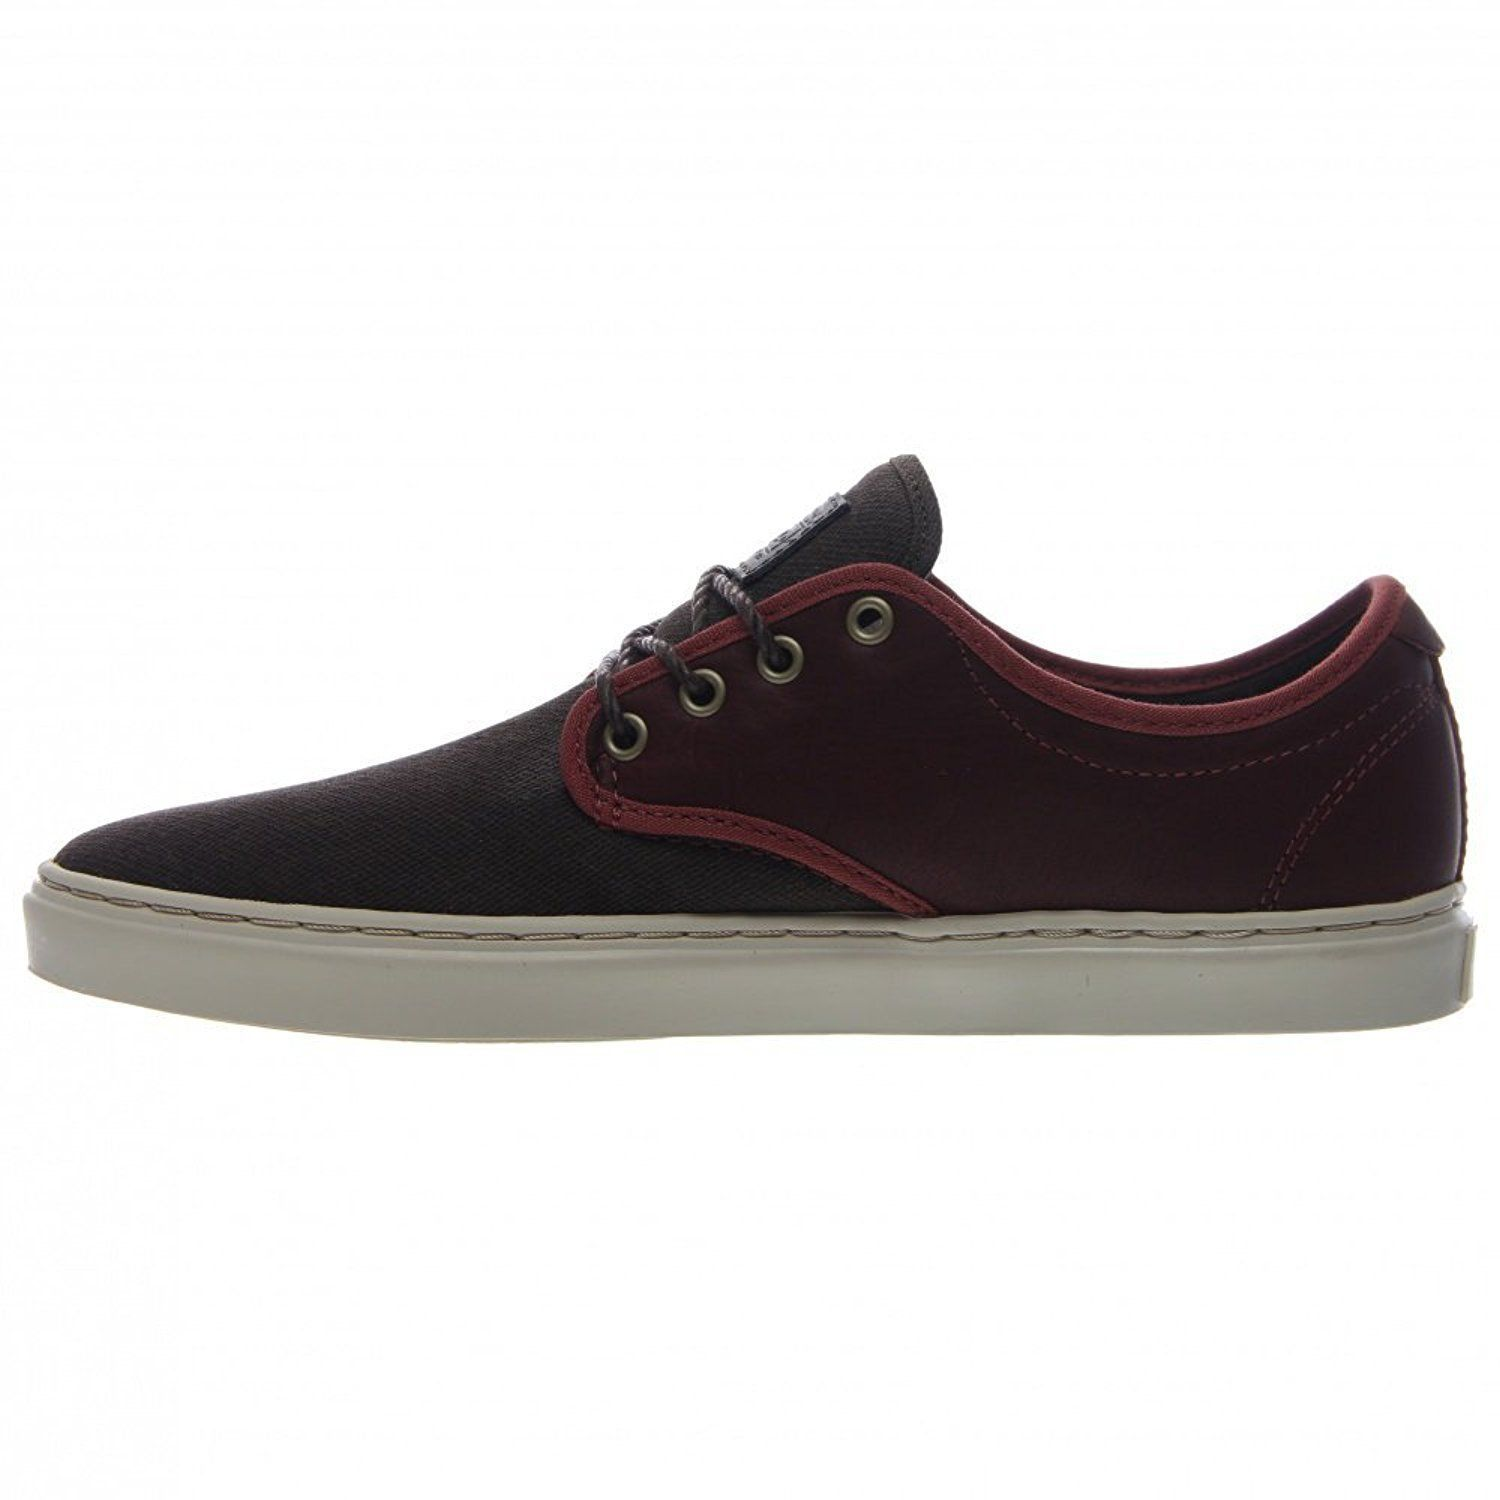 VANS OTW COLLECTION LUDLOW + LEATHER HENNA BROWN SHOES MENS SZ 7.5 BURGUNDY image 5